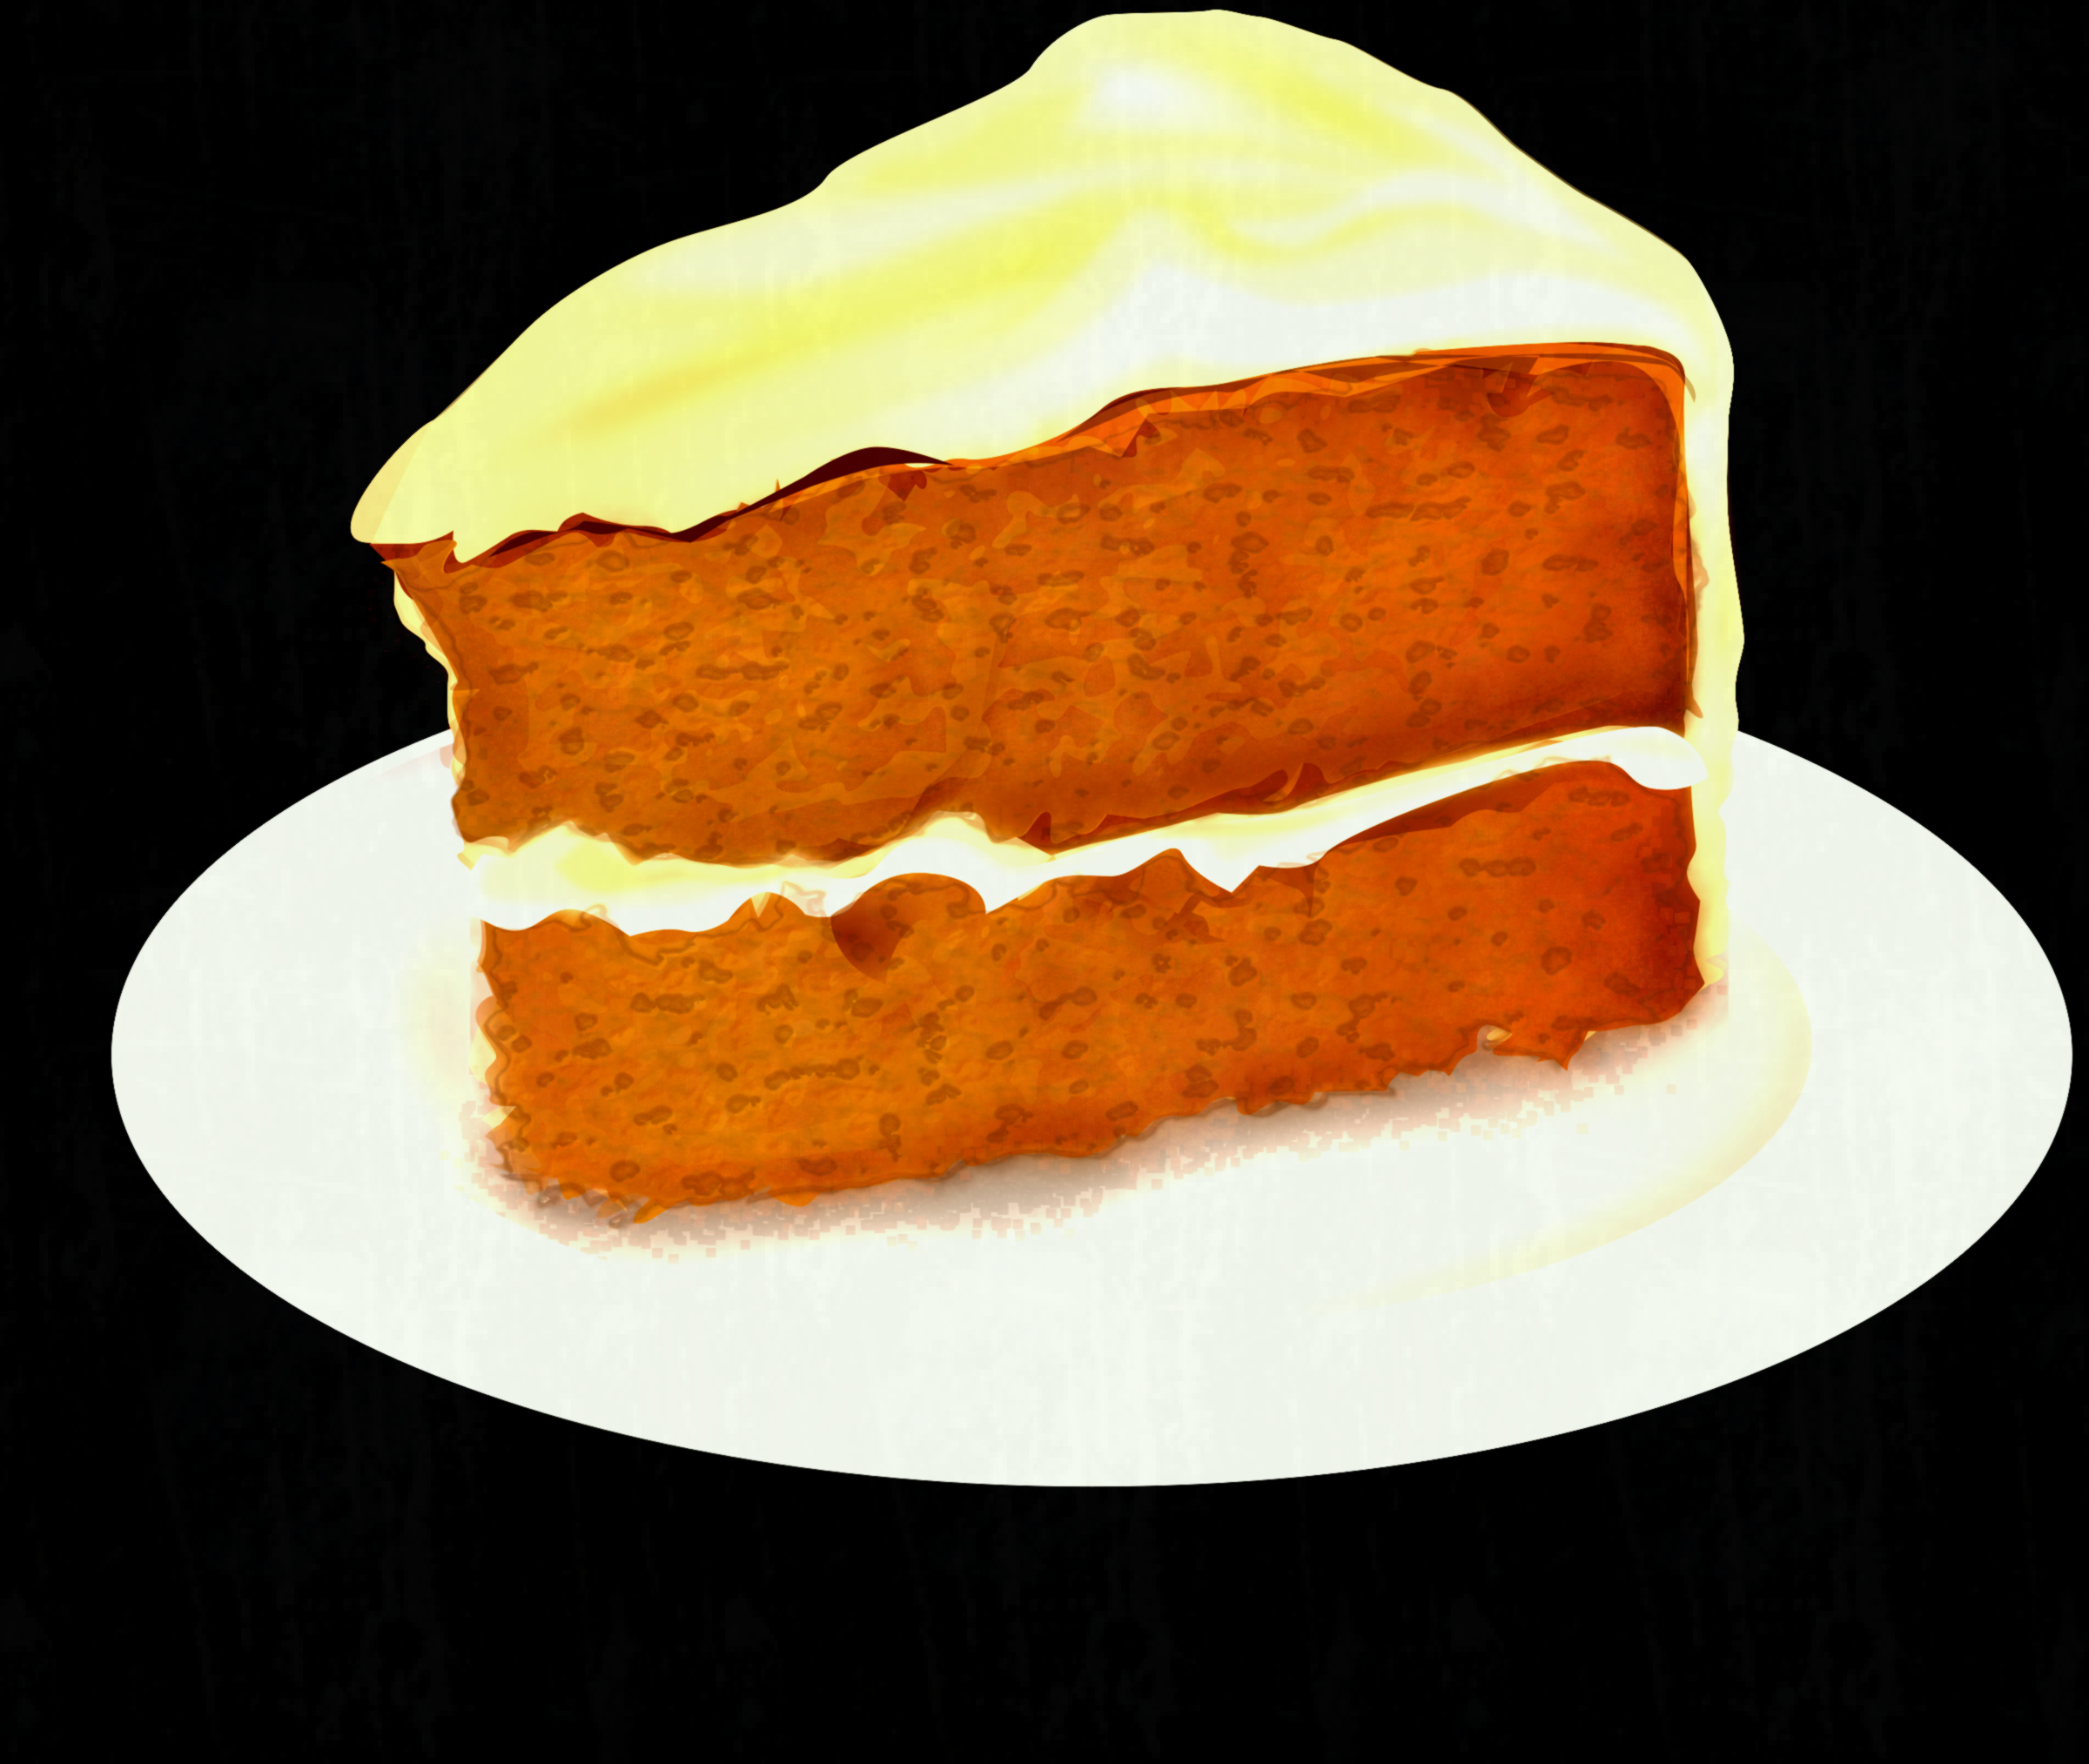 Carrots clipart snack. Carrot cake explore pictures